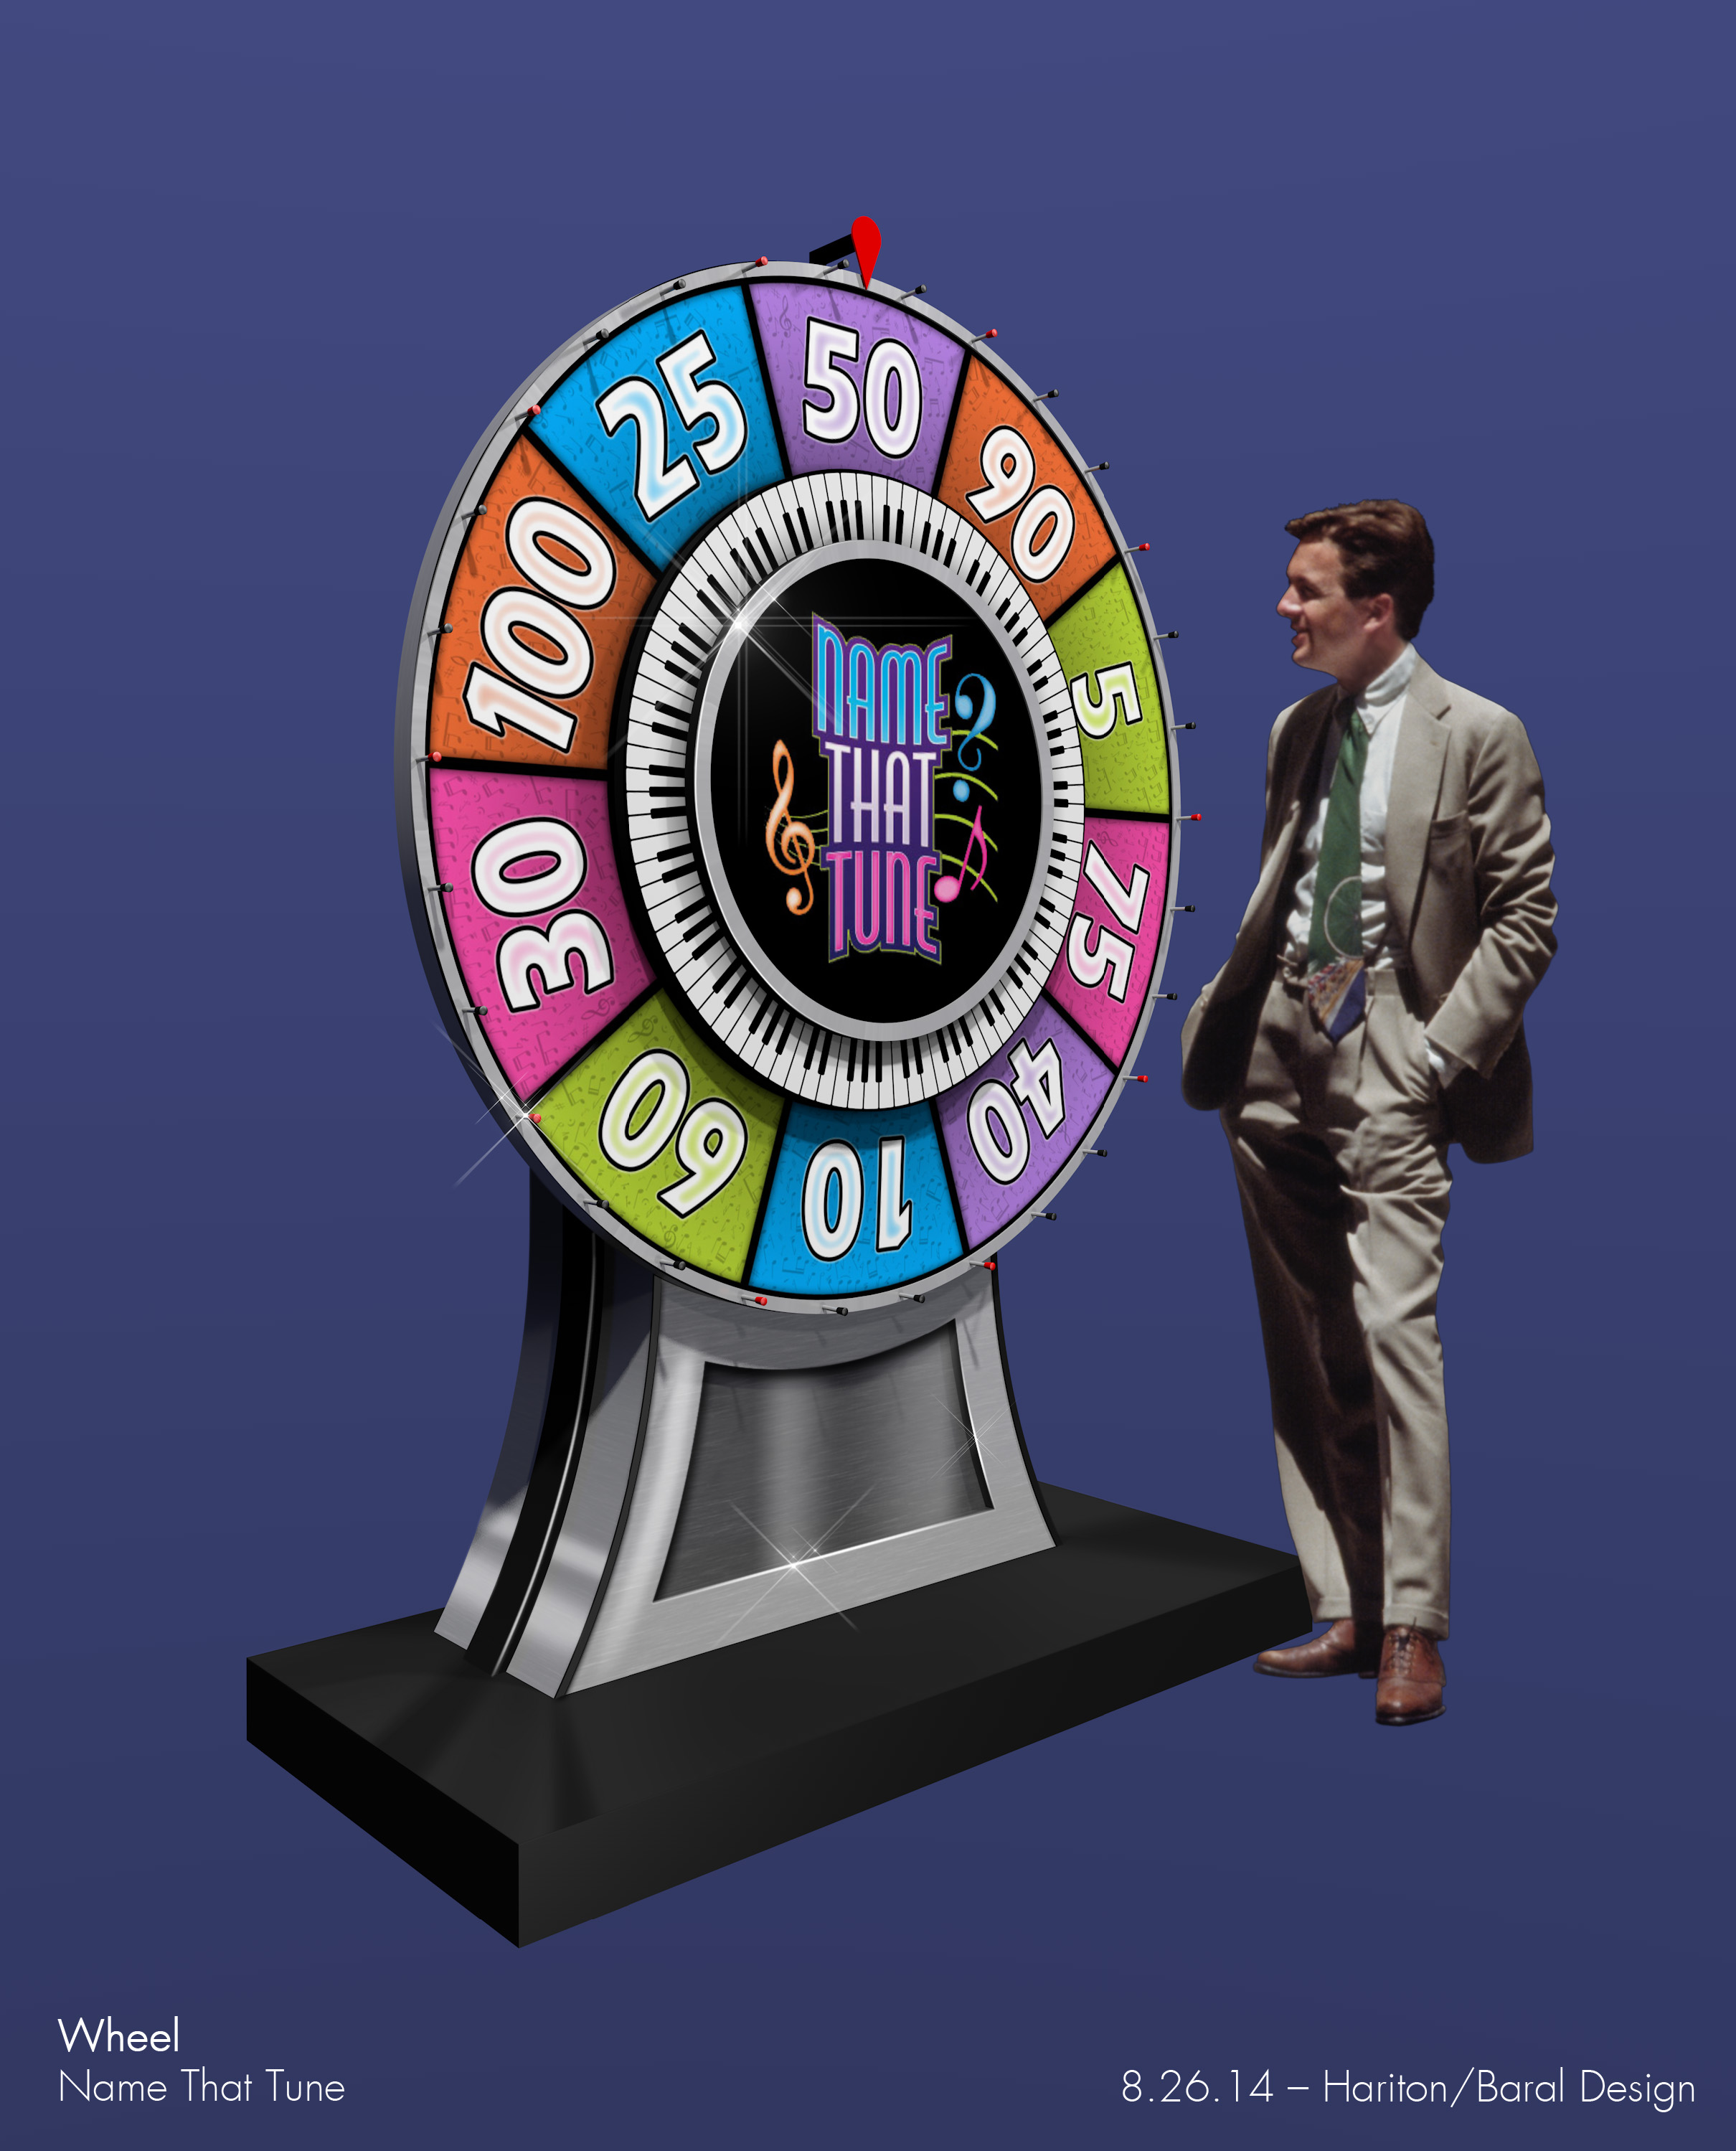 This concept rendering shows an earlier, smaller version of the game wheel.